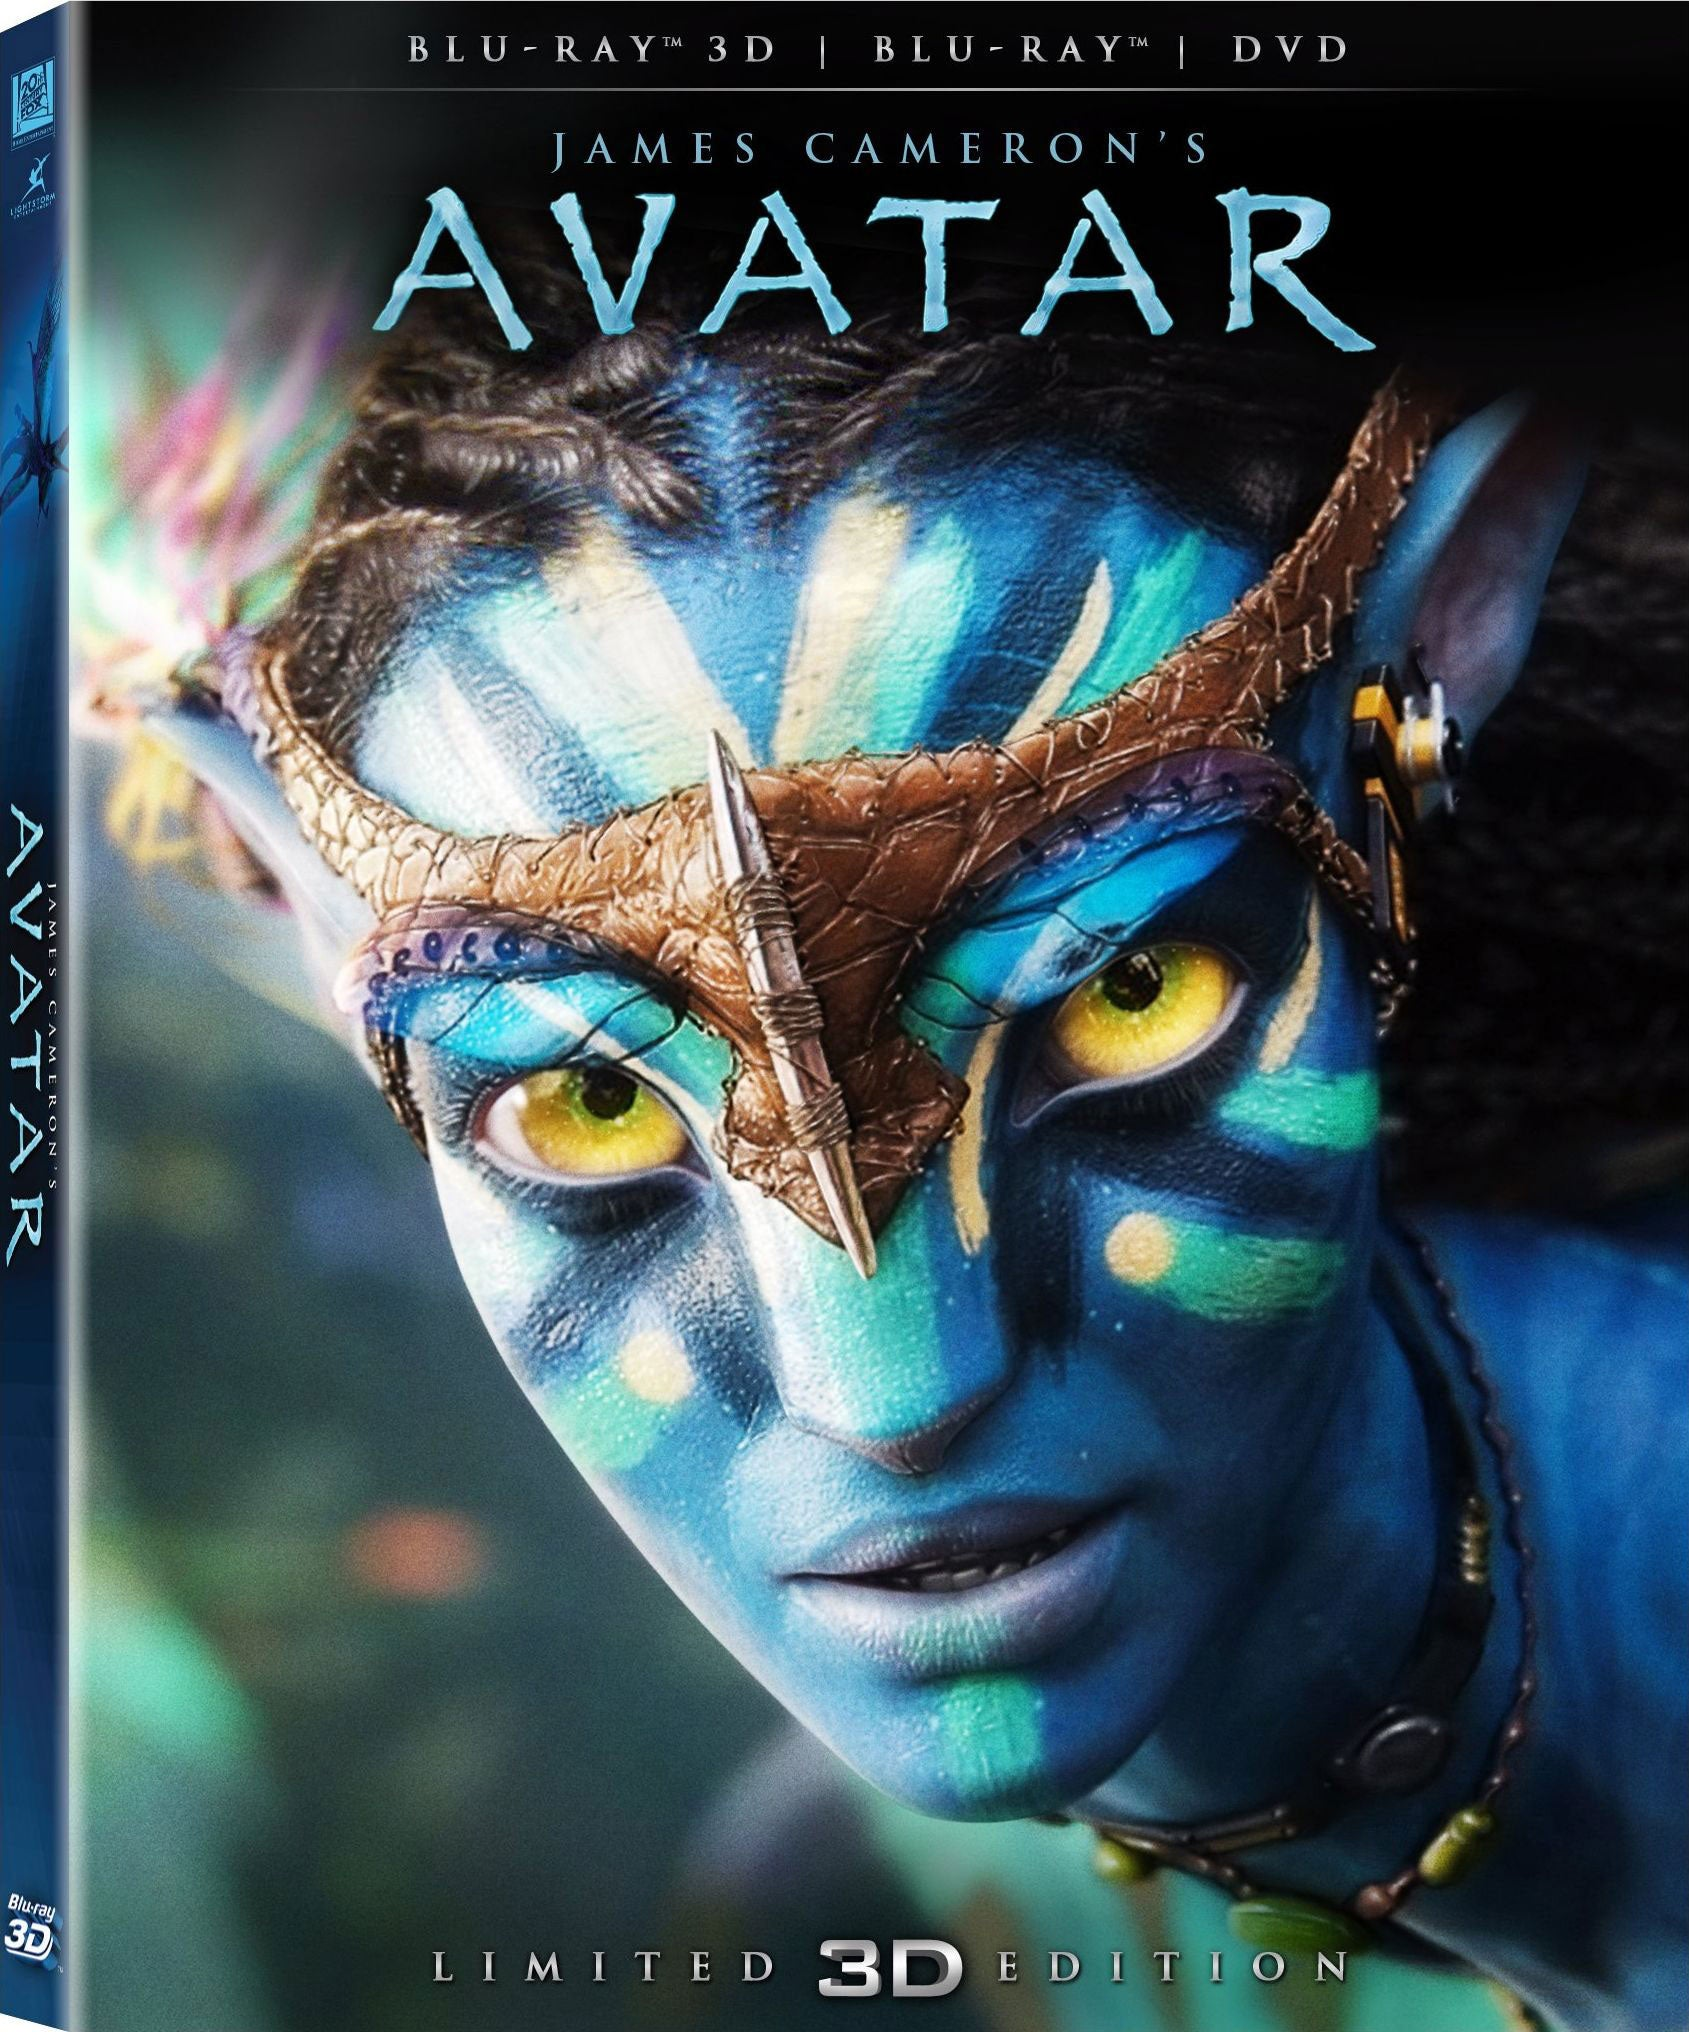 Avatar Limited 3D Edition (Blu-ray/DVD)